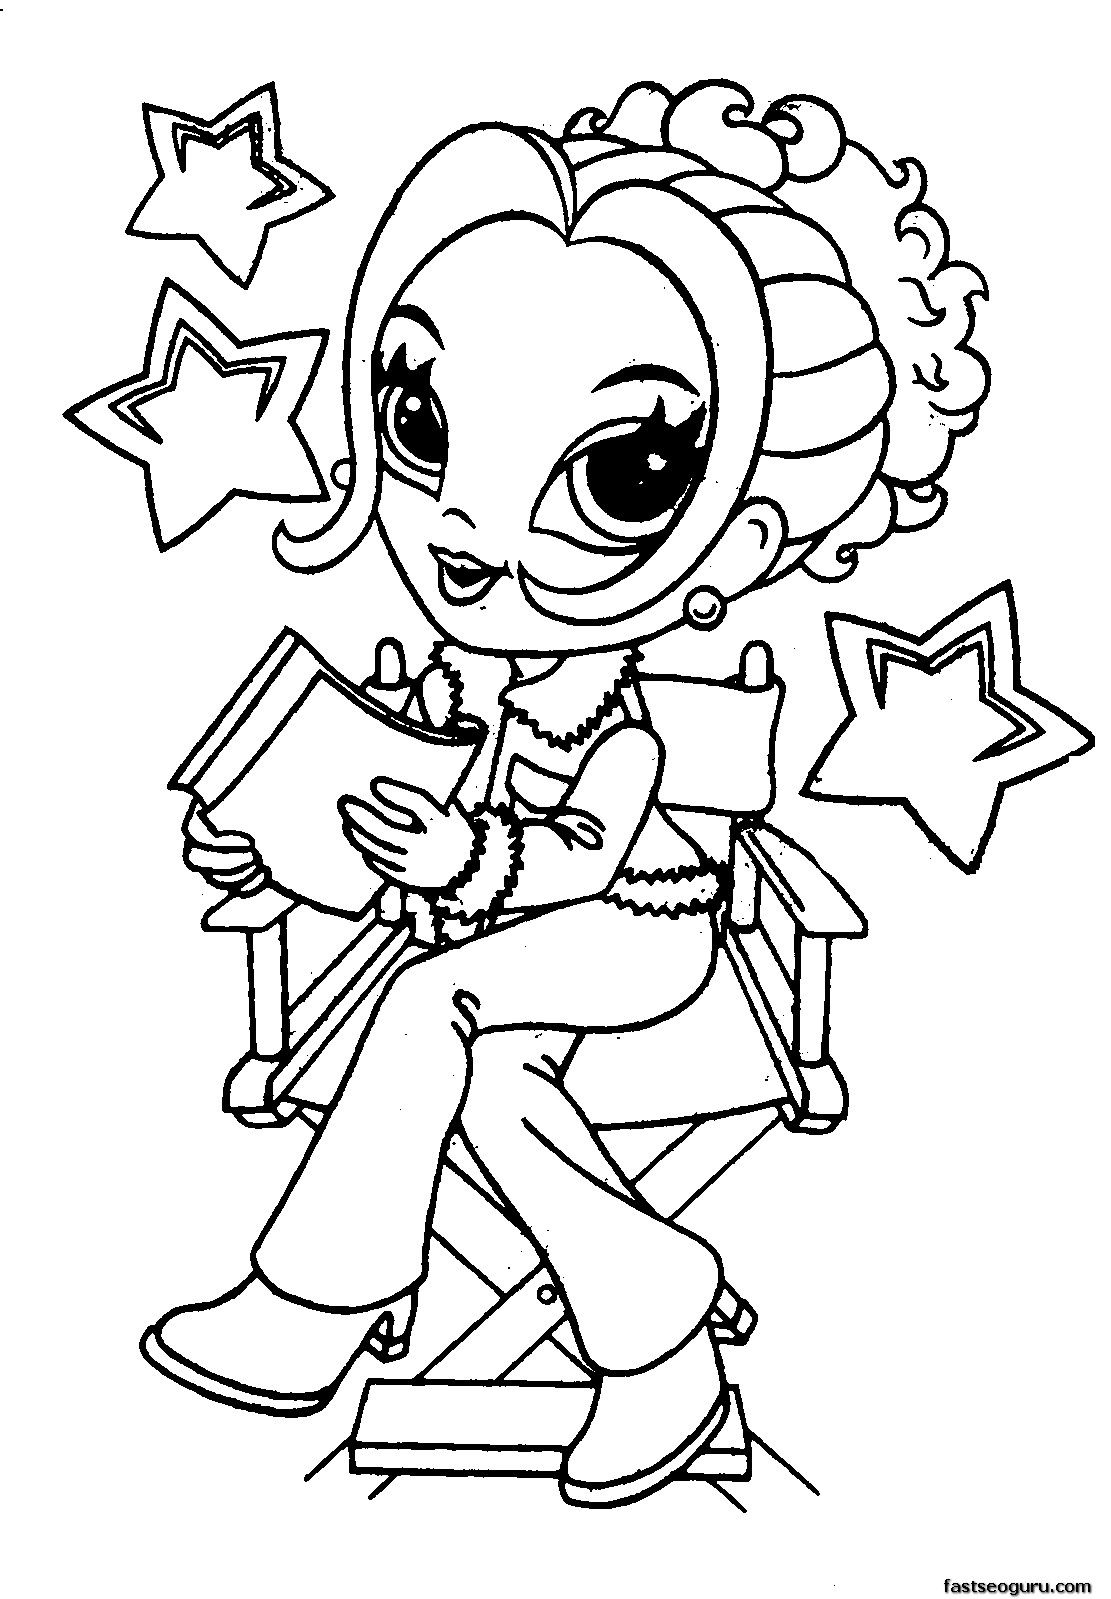 28++ Cute coloring pictures to print out ideas